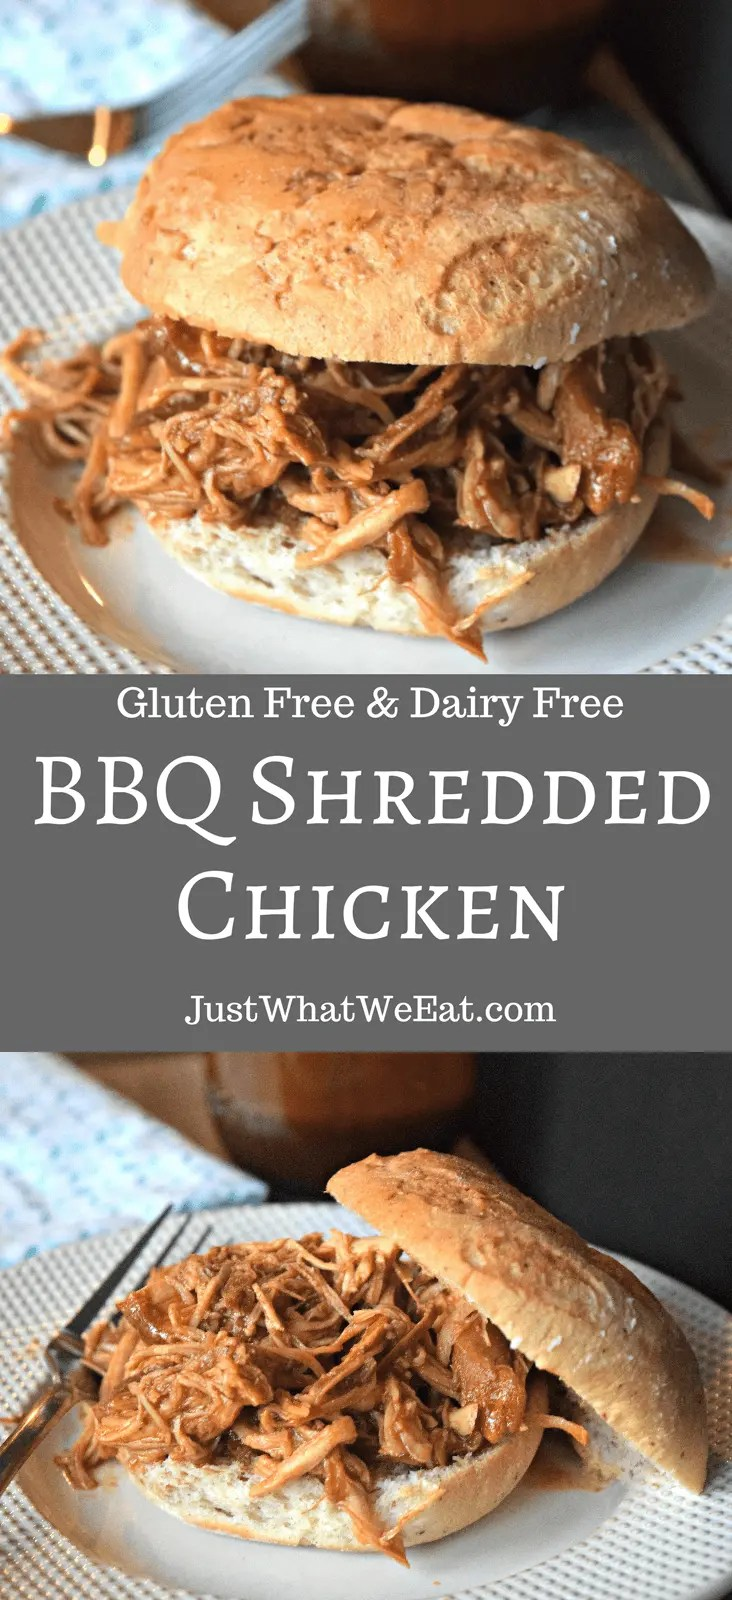 BBQ Shredded Chicken - Gluten Free & Dairy Free